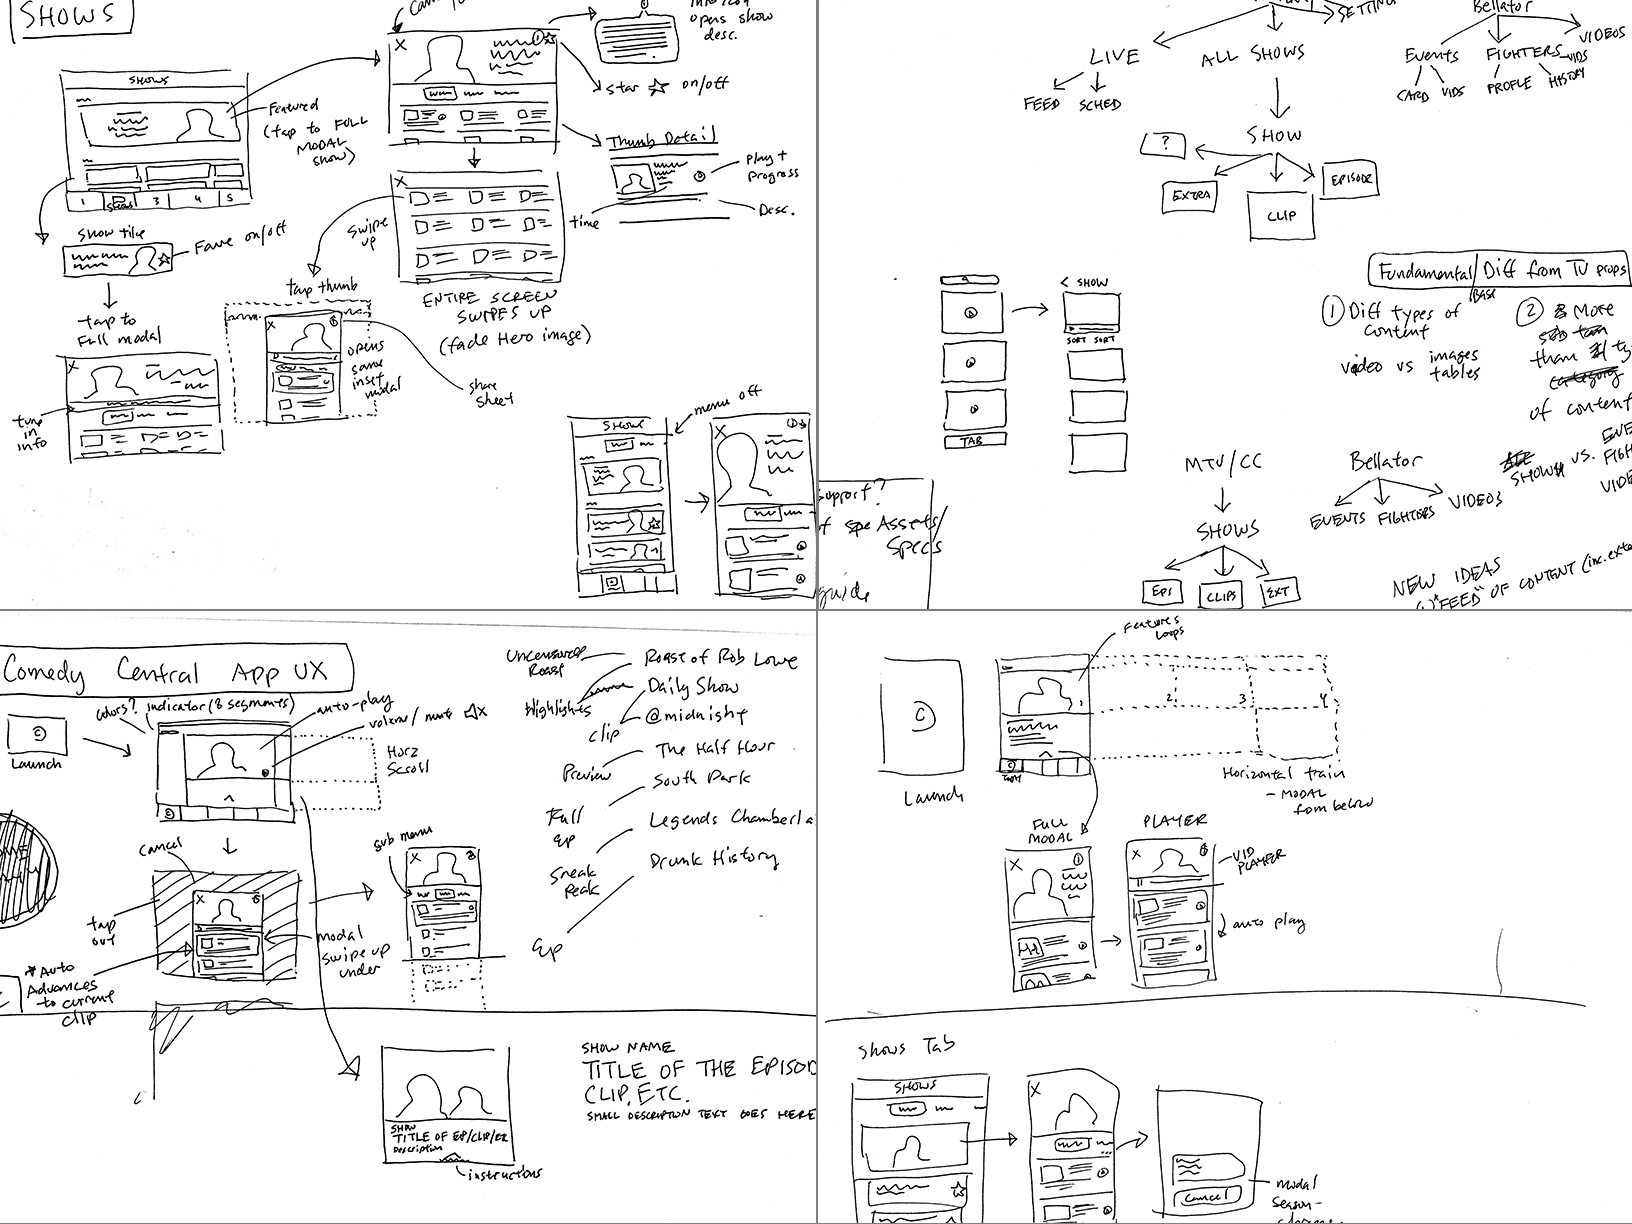 Early sketches mapping how to use the existing platform